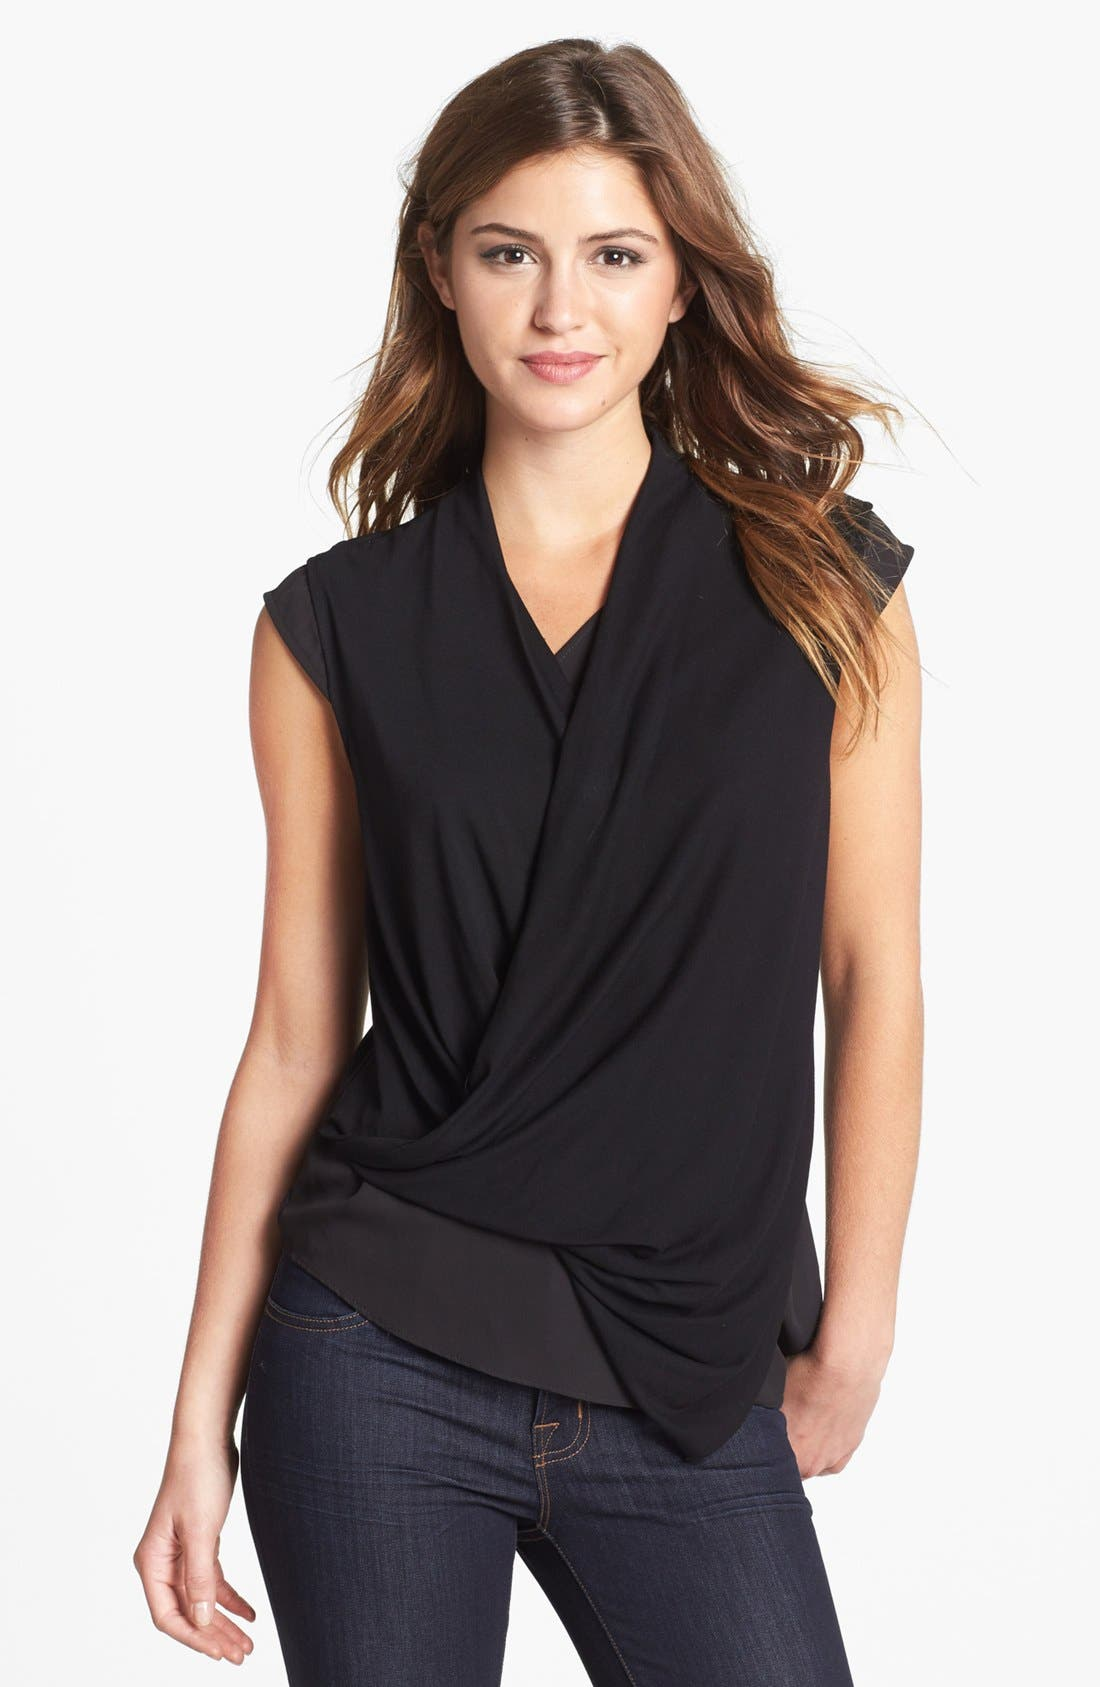 Alternate Image 1 Selected - Vince Camuto Drape Front Mixed Media Top (Online Only)